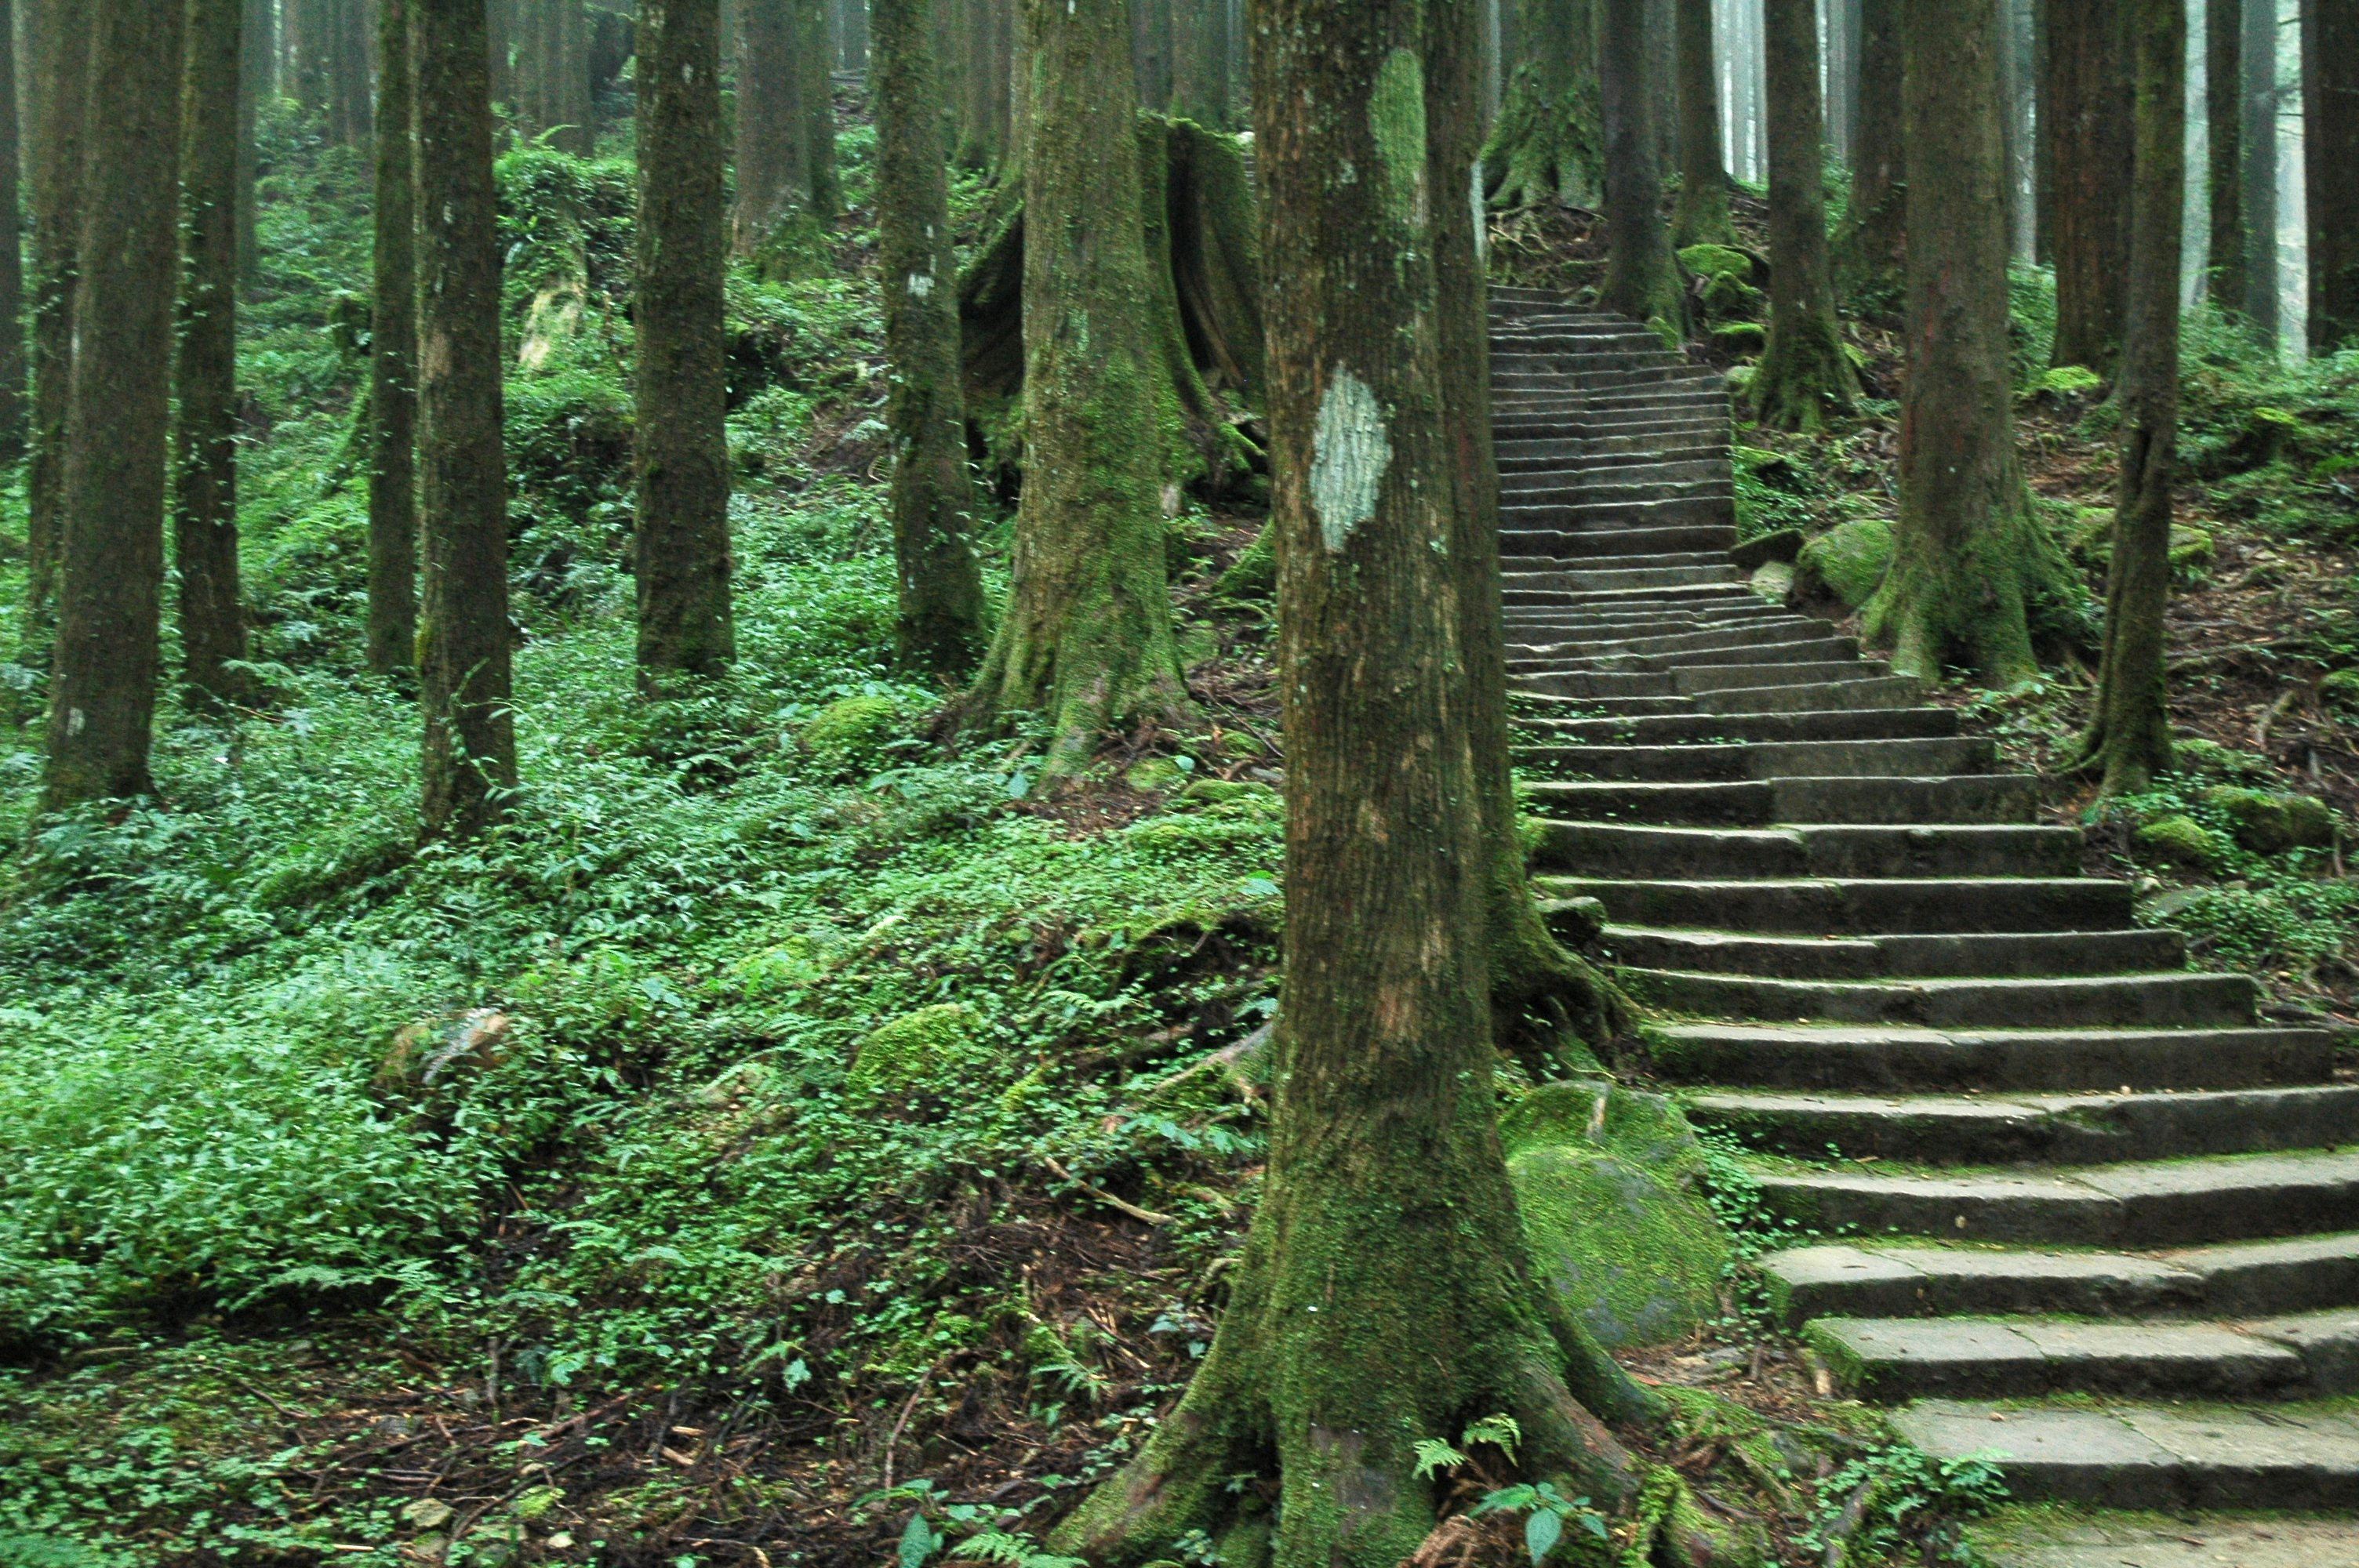 Alishan – Travel guide at Wikivoyage